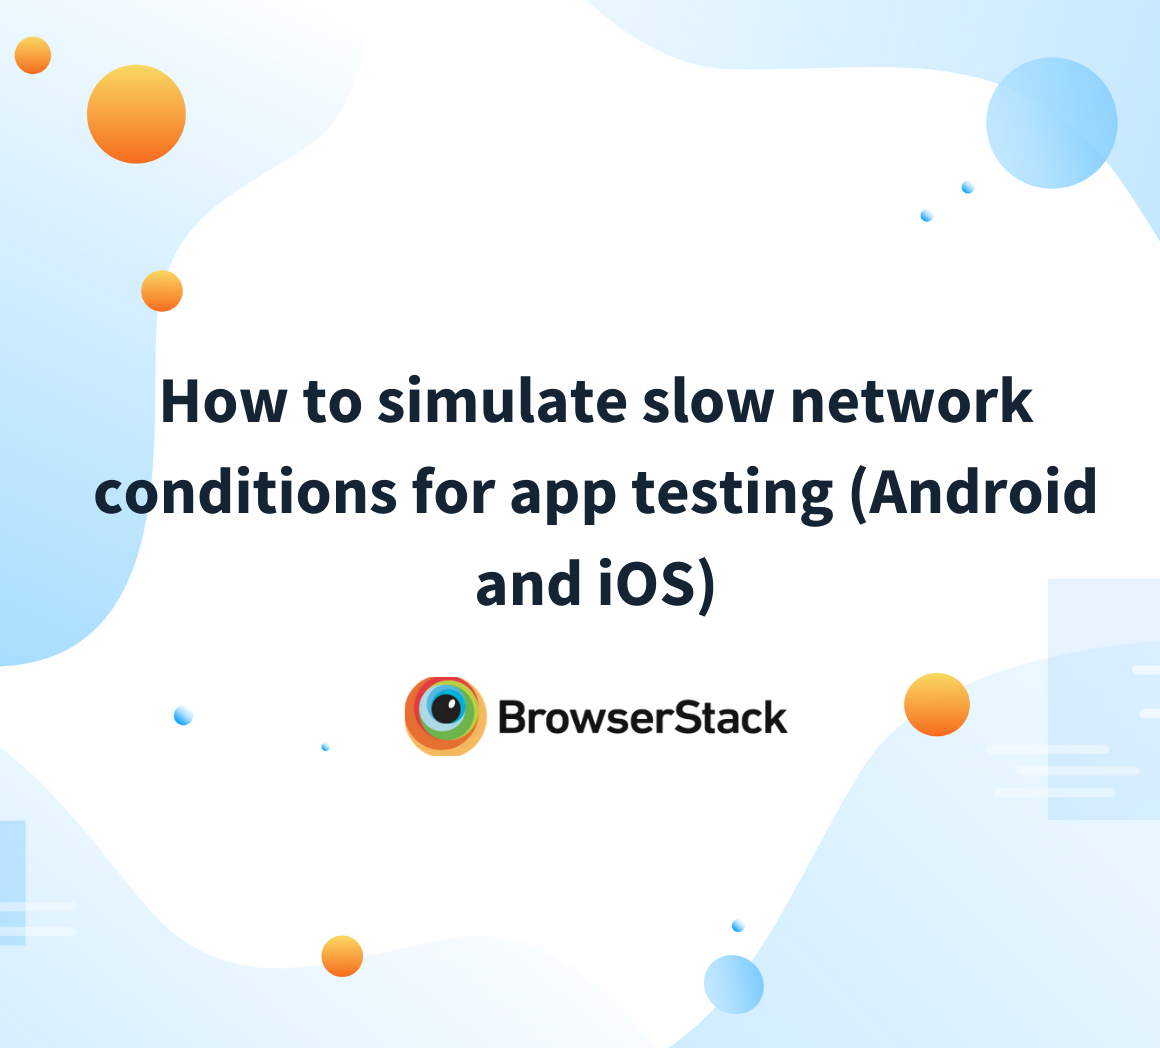 Test apps in slow network conditions